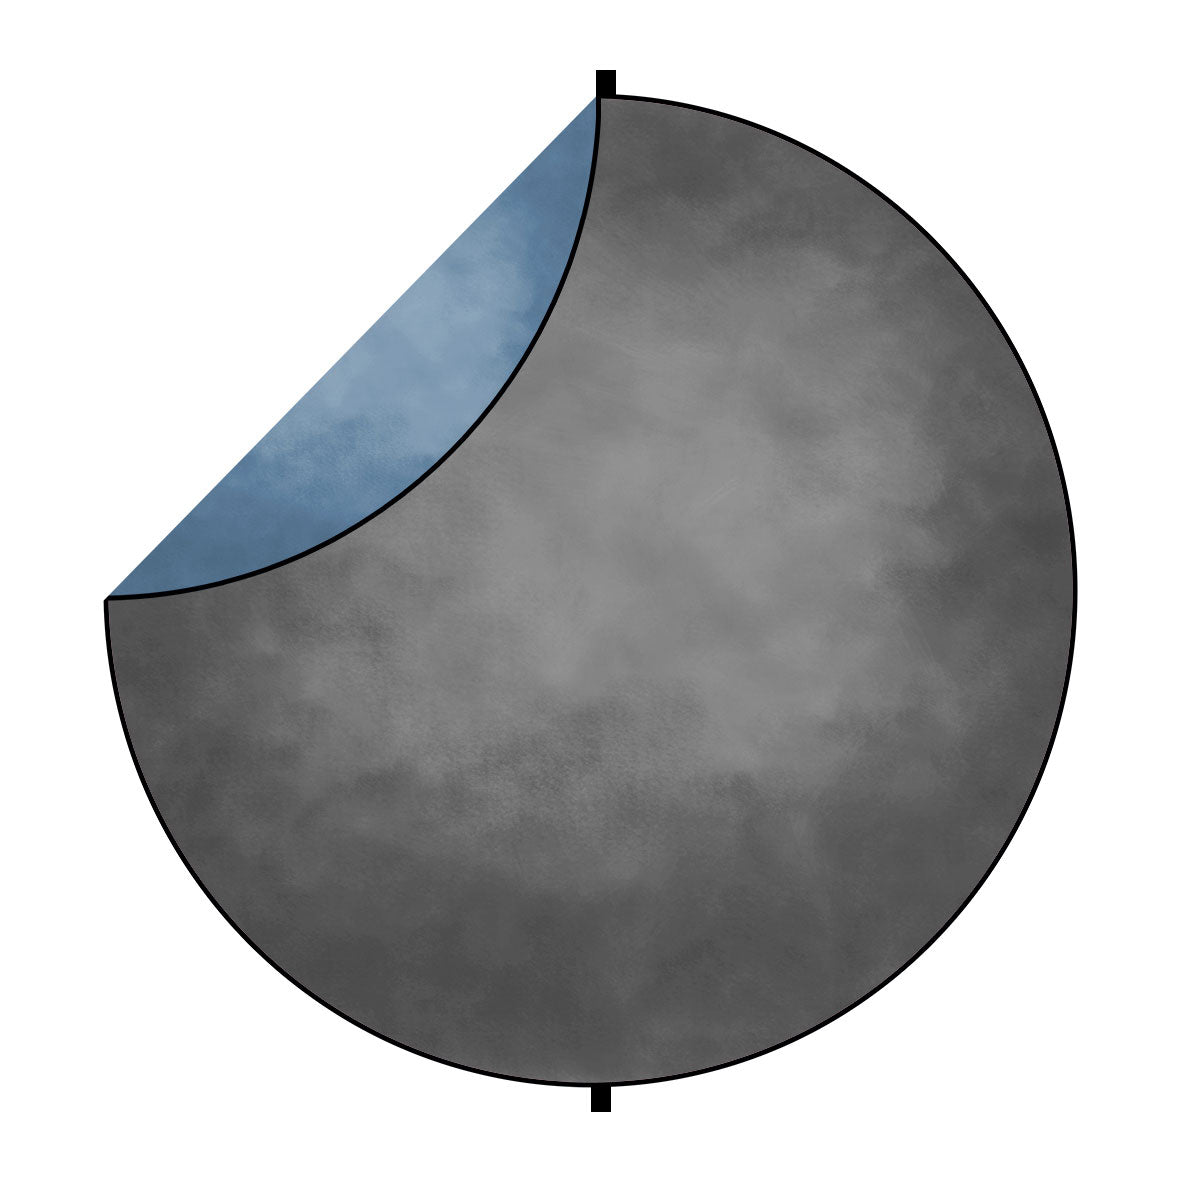 Fox Abstract Gray/Blue Collapsible Photography Backdrop 5x5ft(1.5x1.5m)